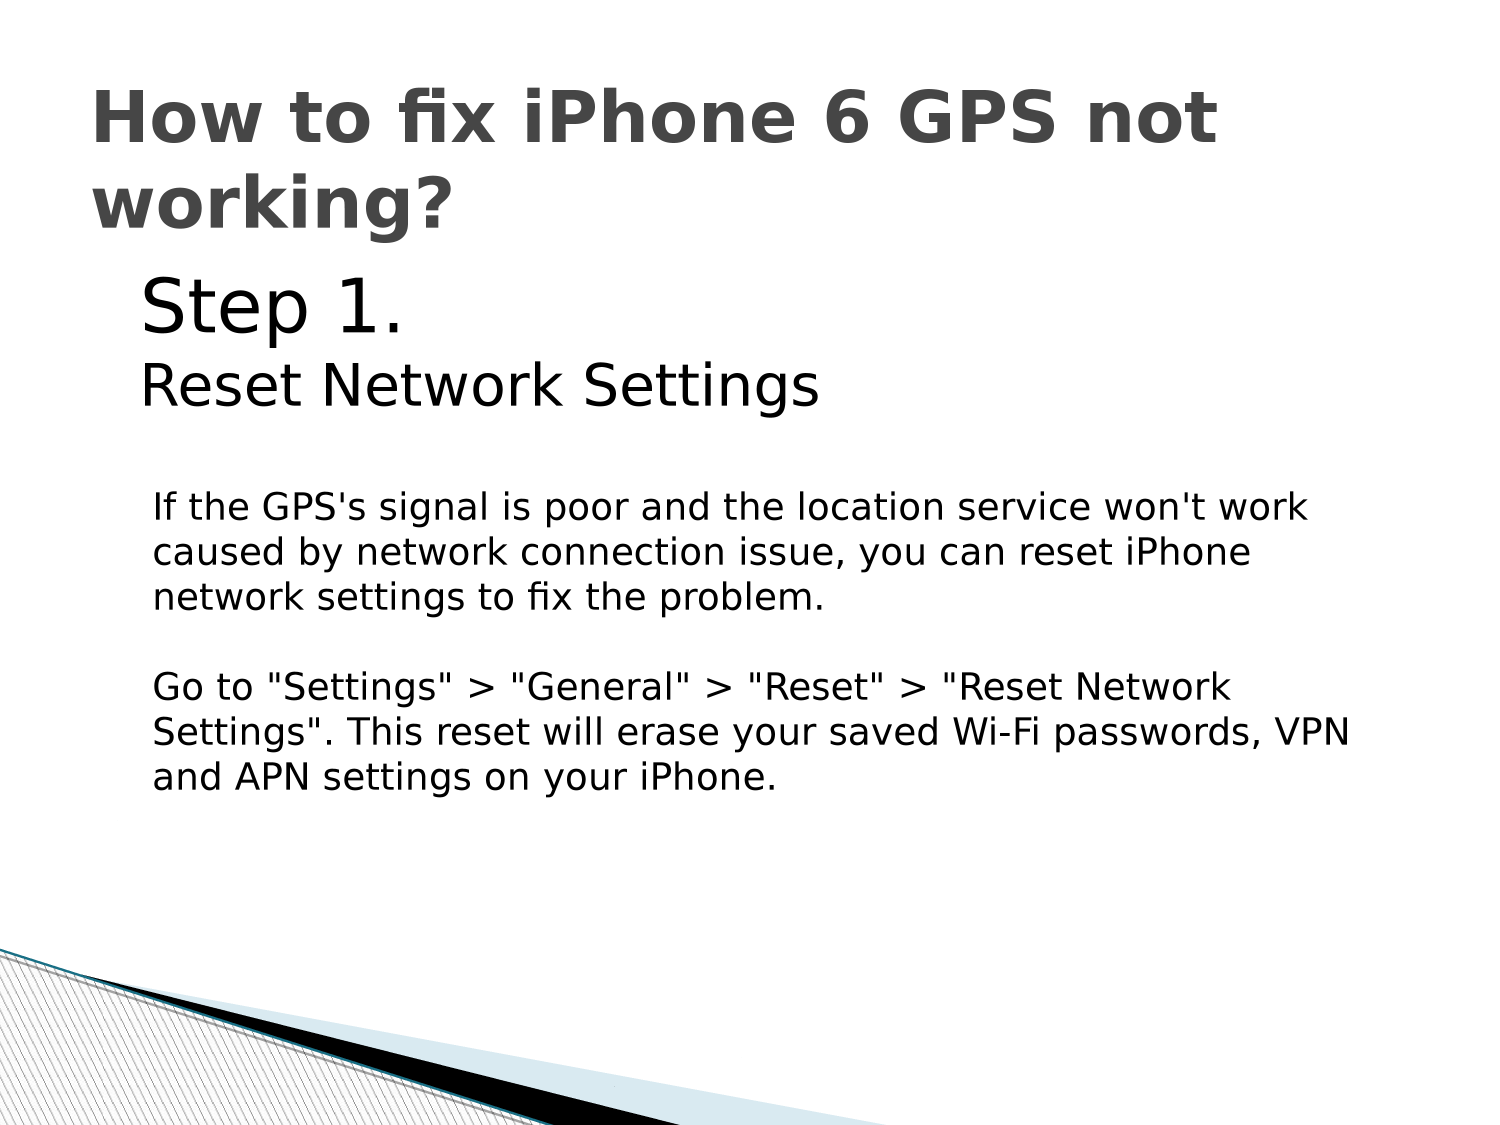 GPS Not Working in iPhone 1-855-791-4041 Fix Now